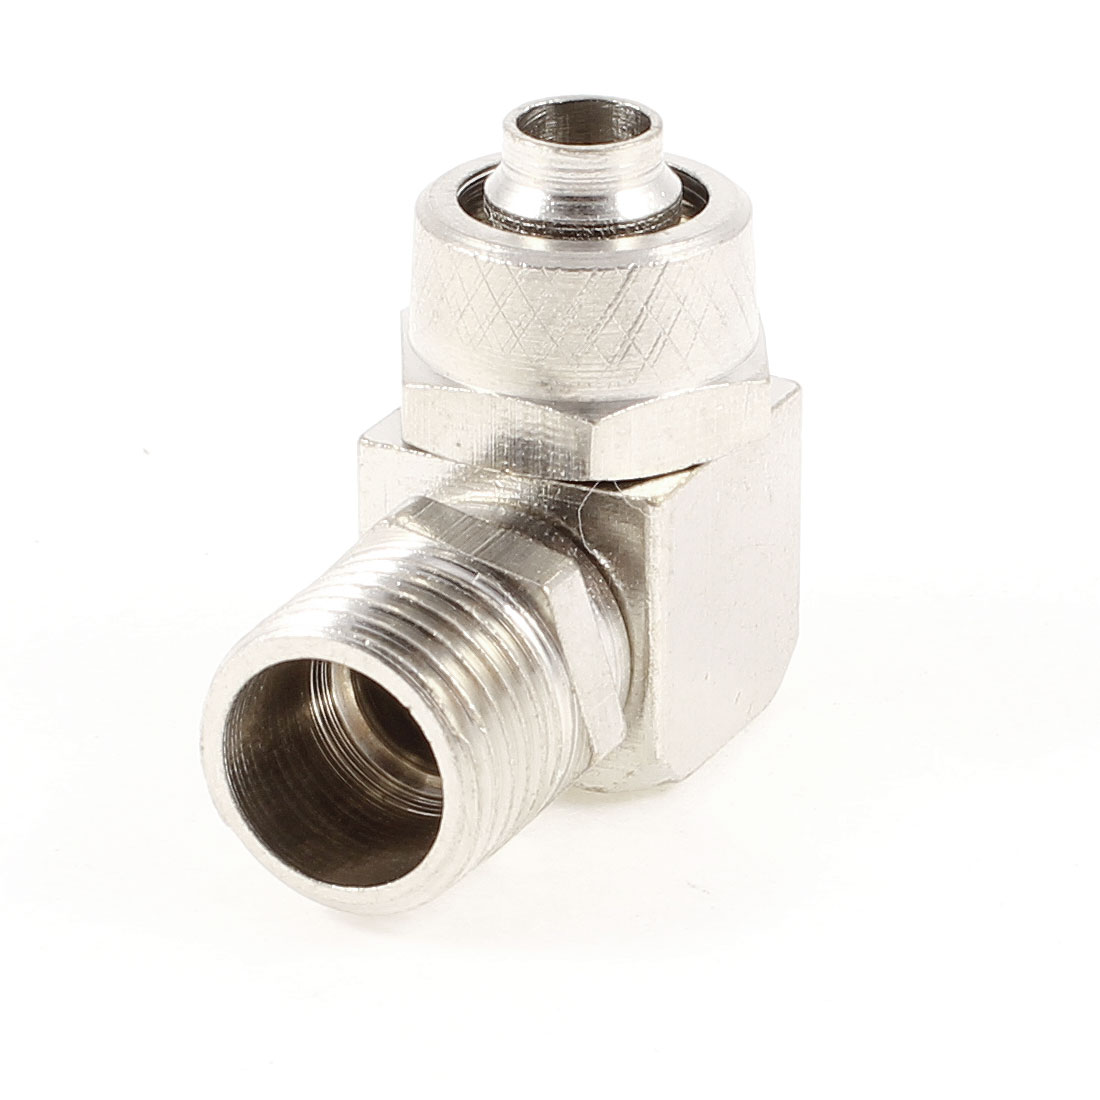 Right Angle Pneumatic 6.5mmx10mm Air Tube Quick Connector Adapter